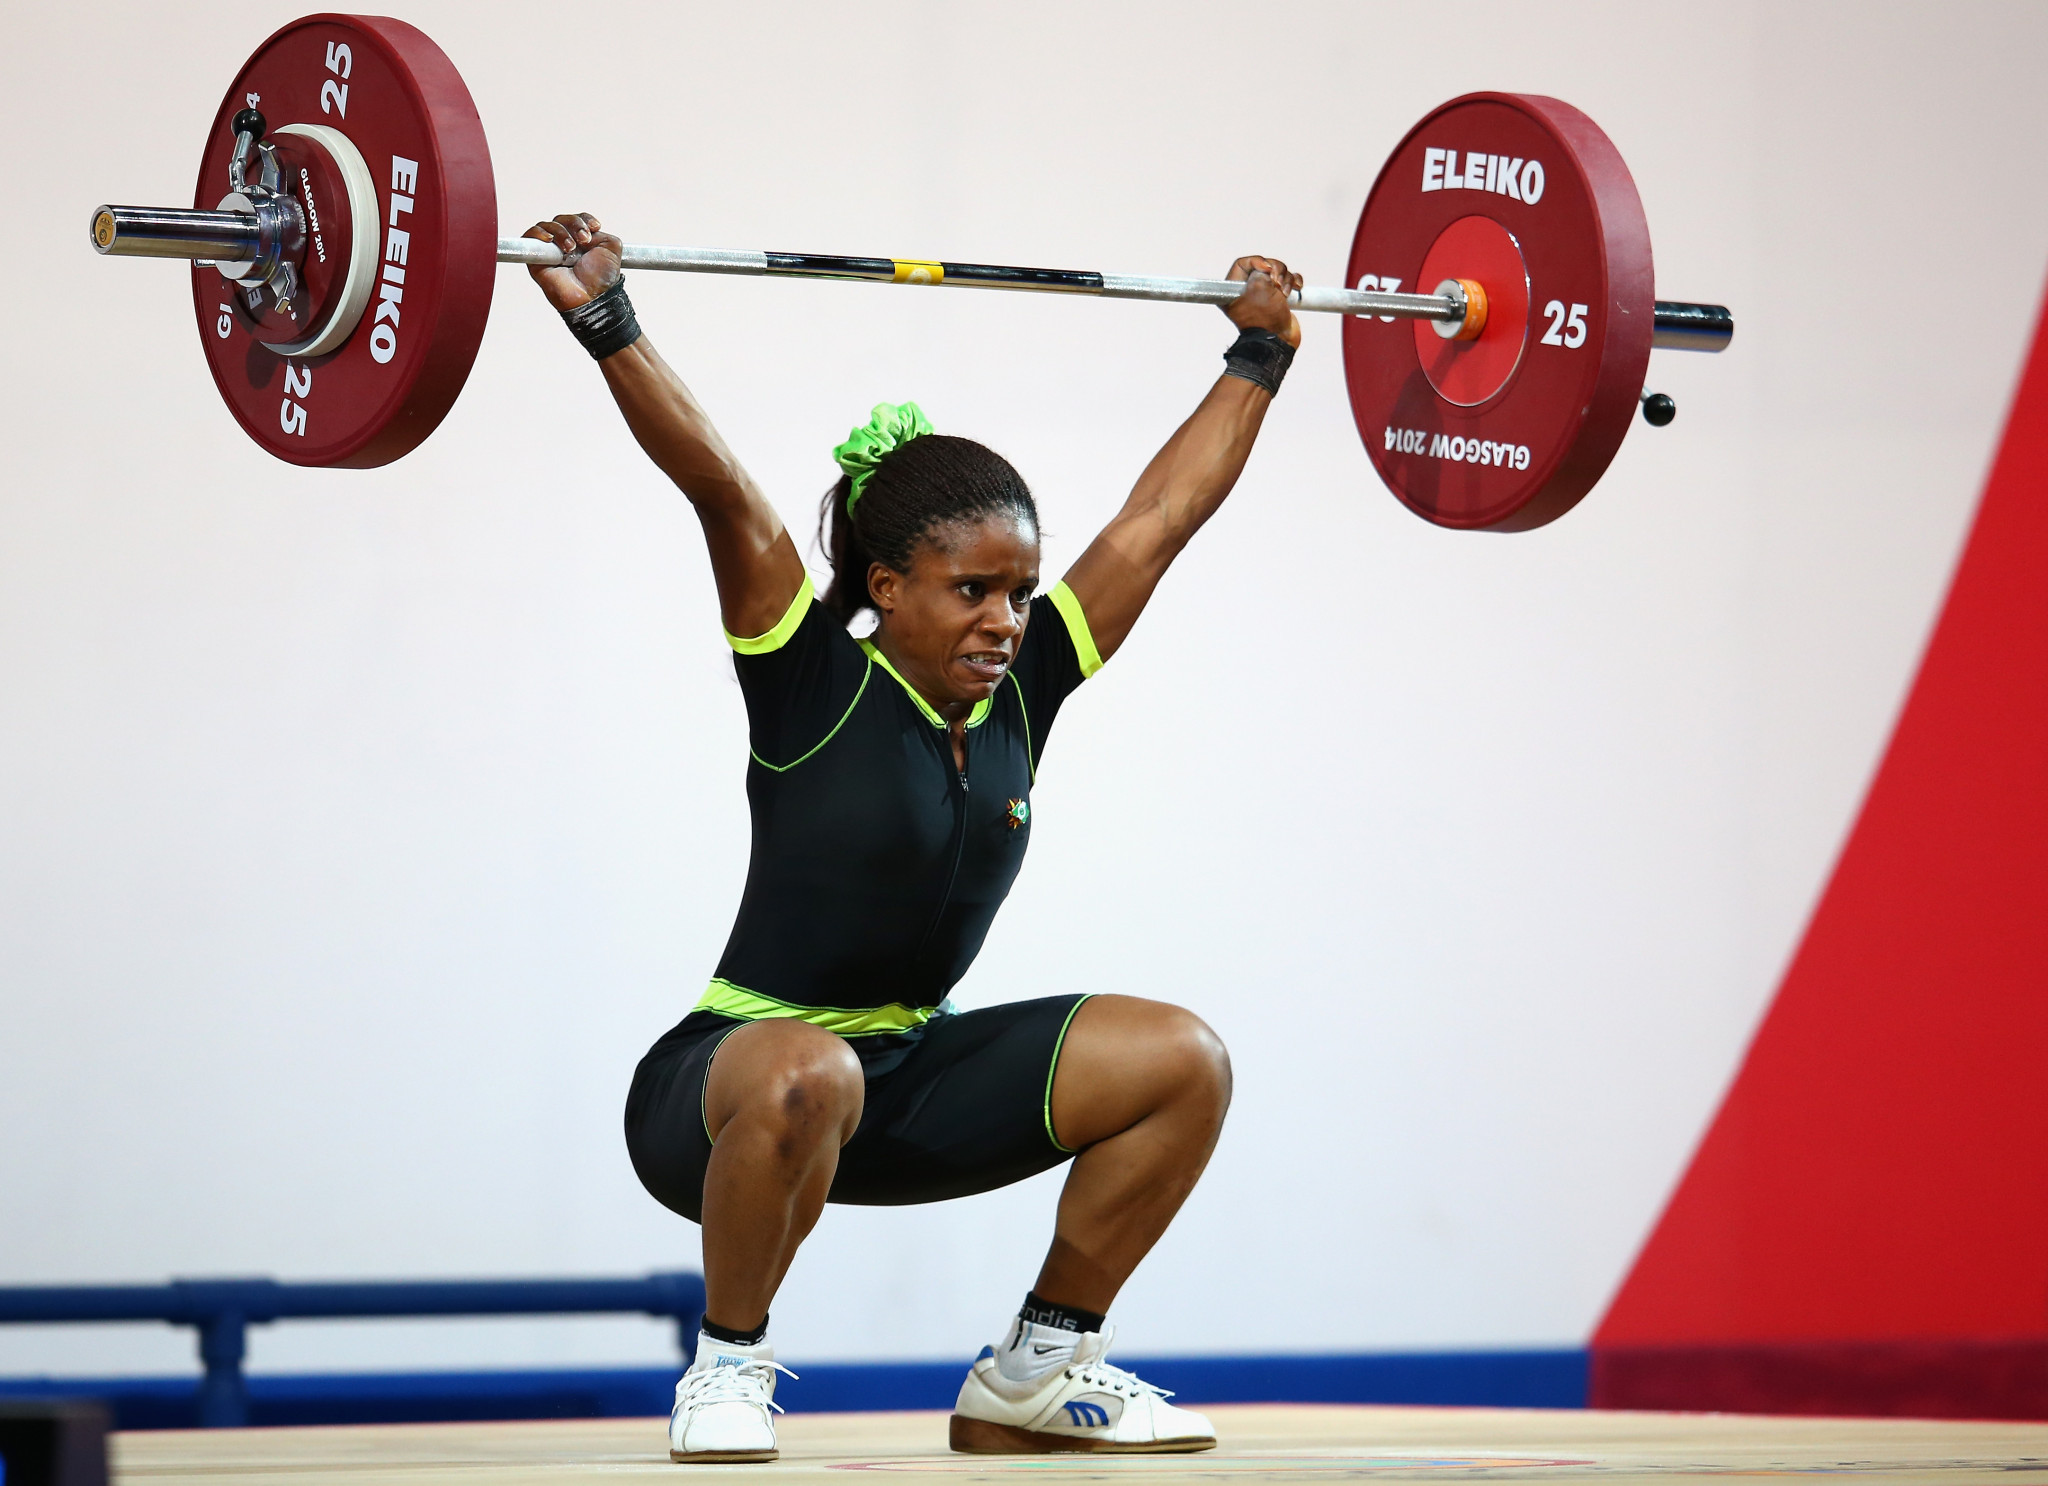 Chika Amalaha won a gold medal at Glasgow 2014, only to be subsequently be disqualified for doping ©Getty Images